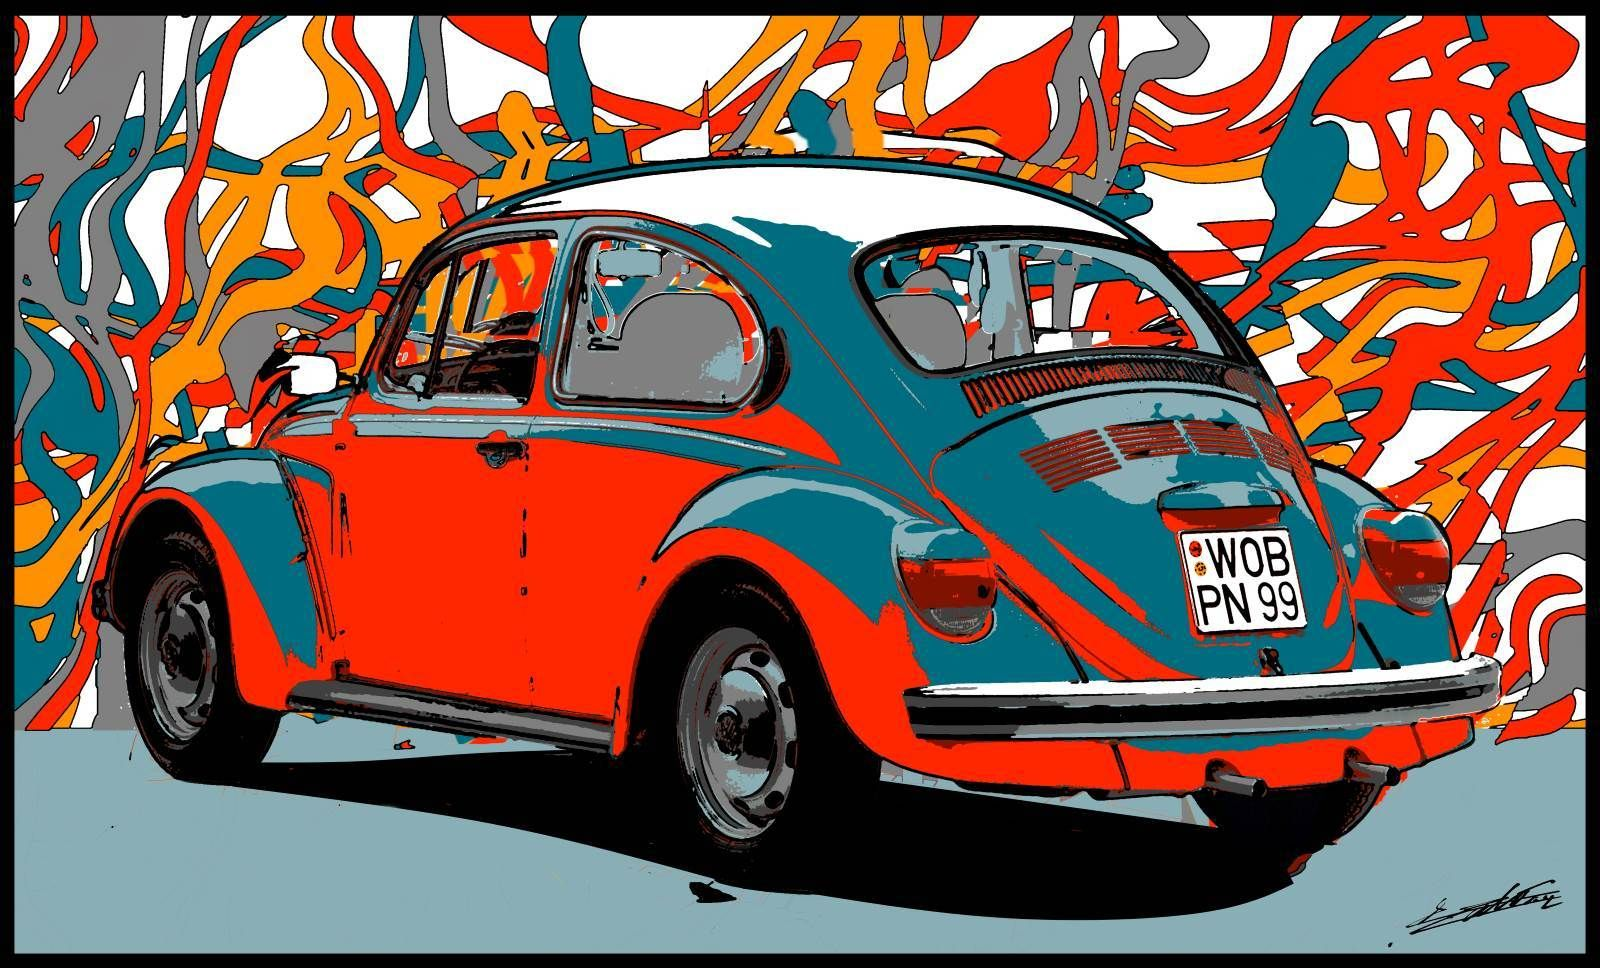 tableau voiture ancienne collection vw coccinelle rouge peinture moderne pop art design artiste. Black Bedroom Furniture Sets. Home Design Ideas